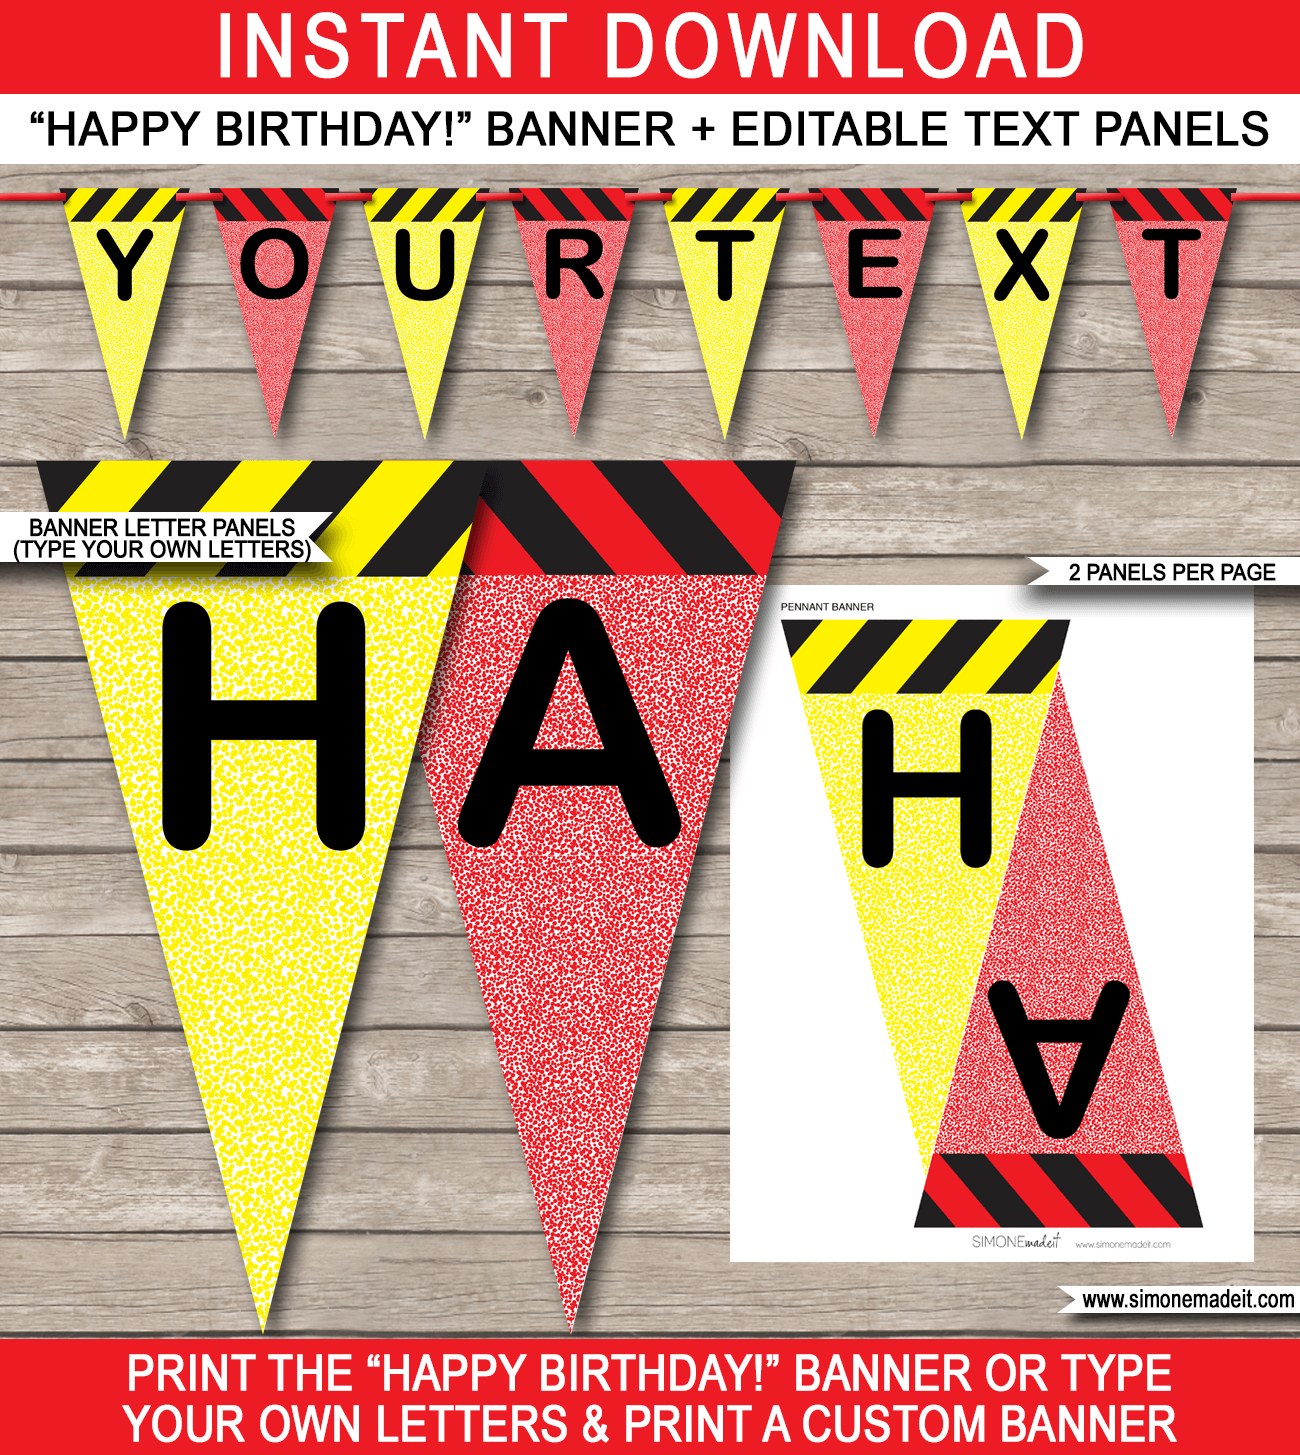 Science Party Banner Template - Happy Birthday Bunting Pennants - Editable and Printable DIY Template - INSTANT DOWNLOAD $4.50 via simonemadeit.com